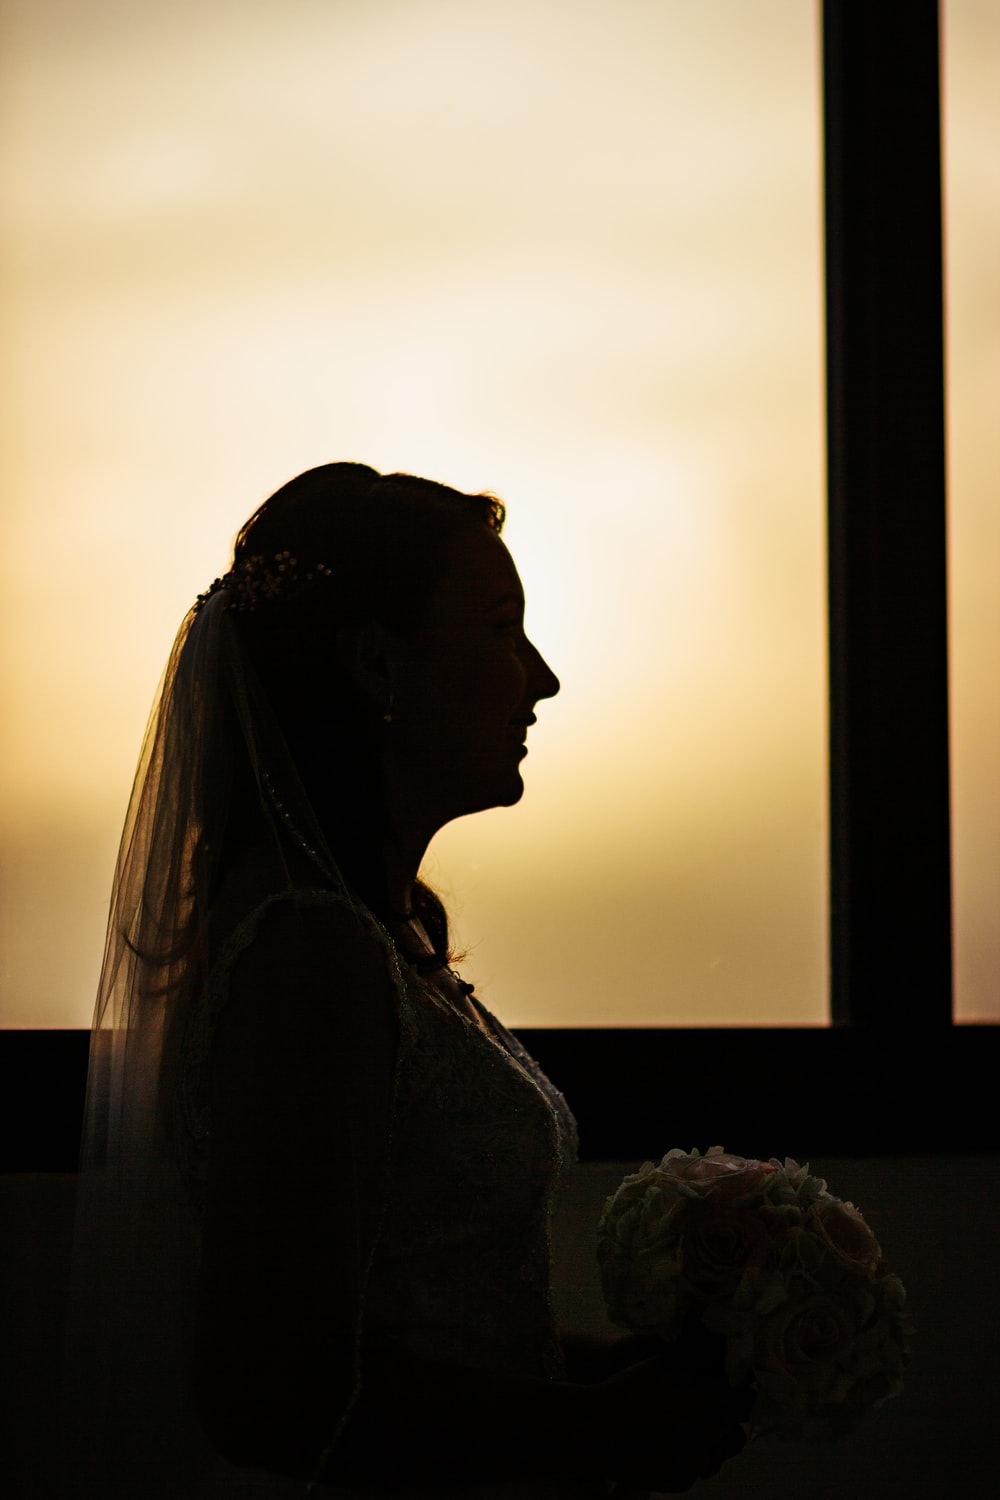 silhouette of woman holding flowers